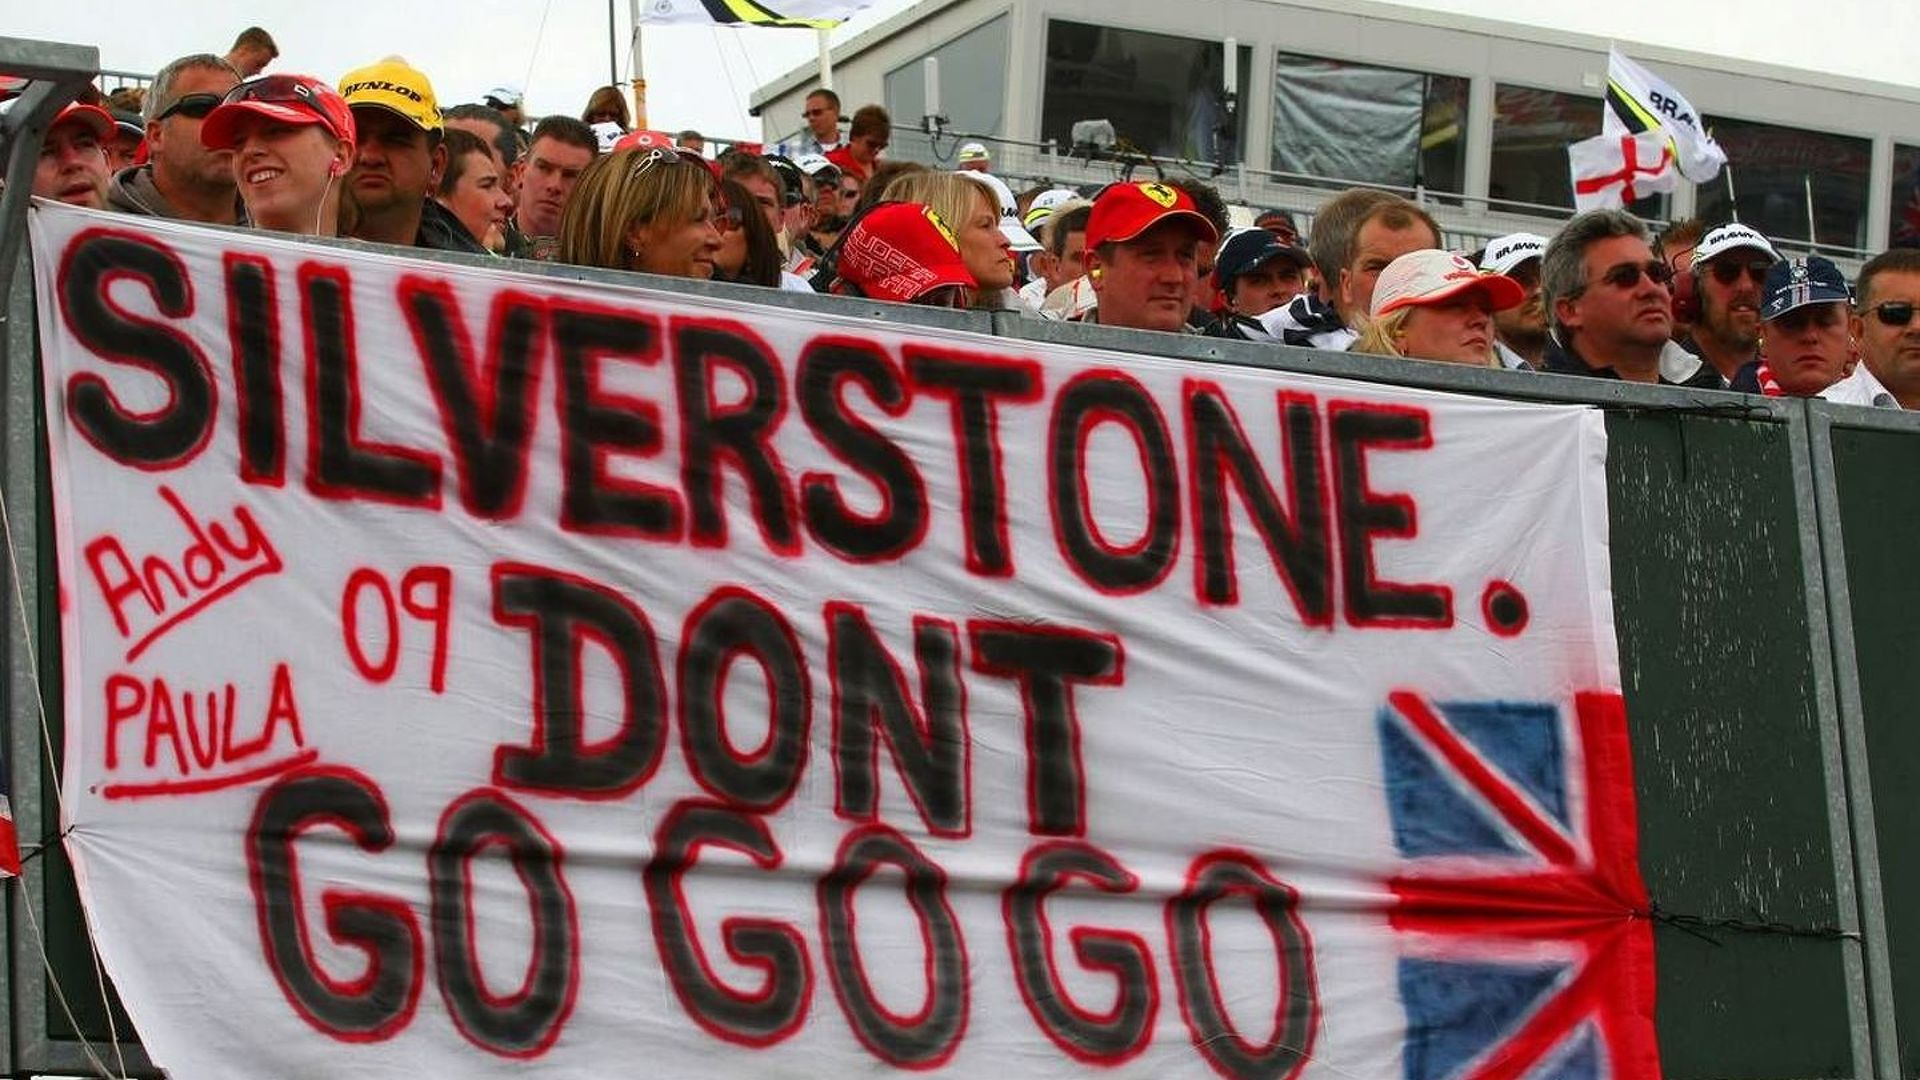 Silverstone can sign GP deal on Tuesday - Ecclestone